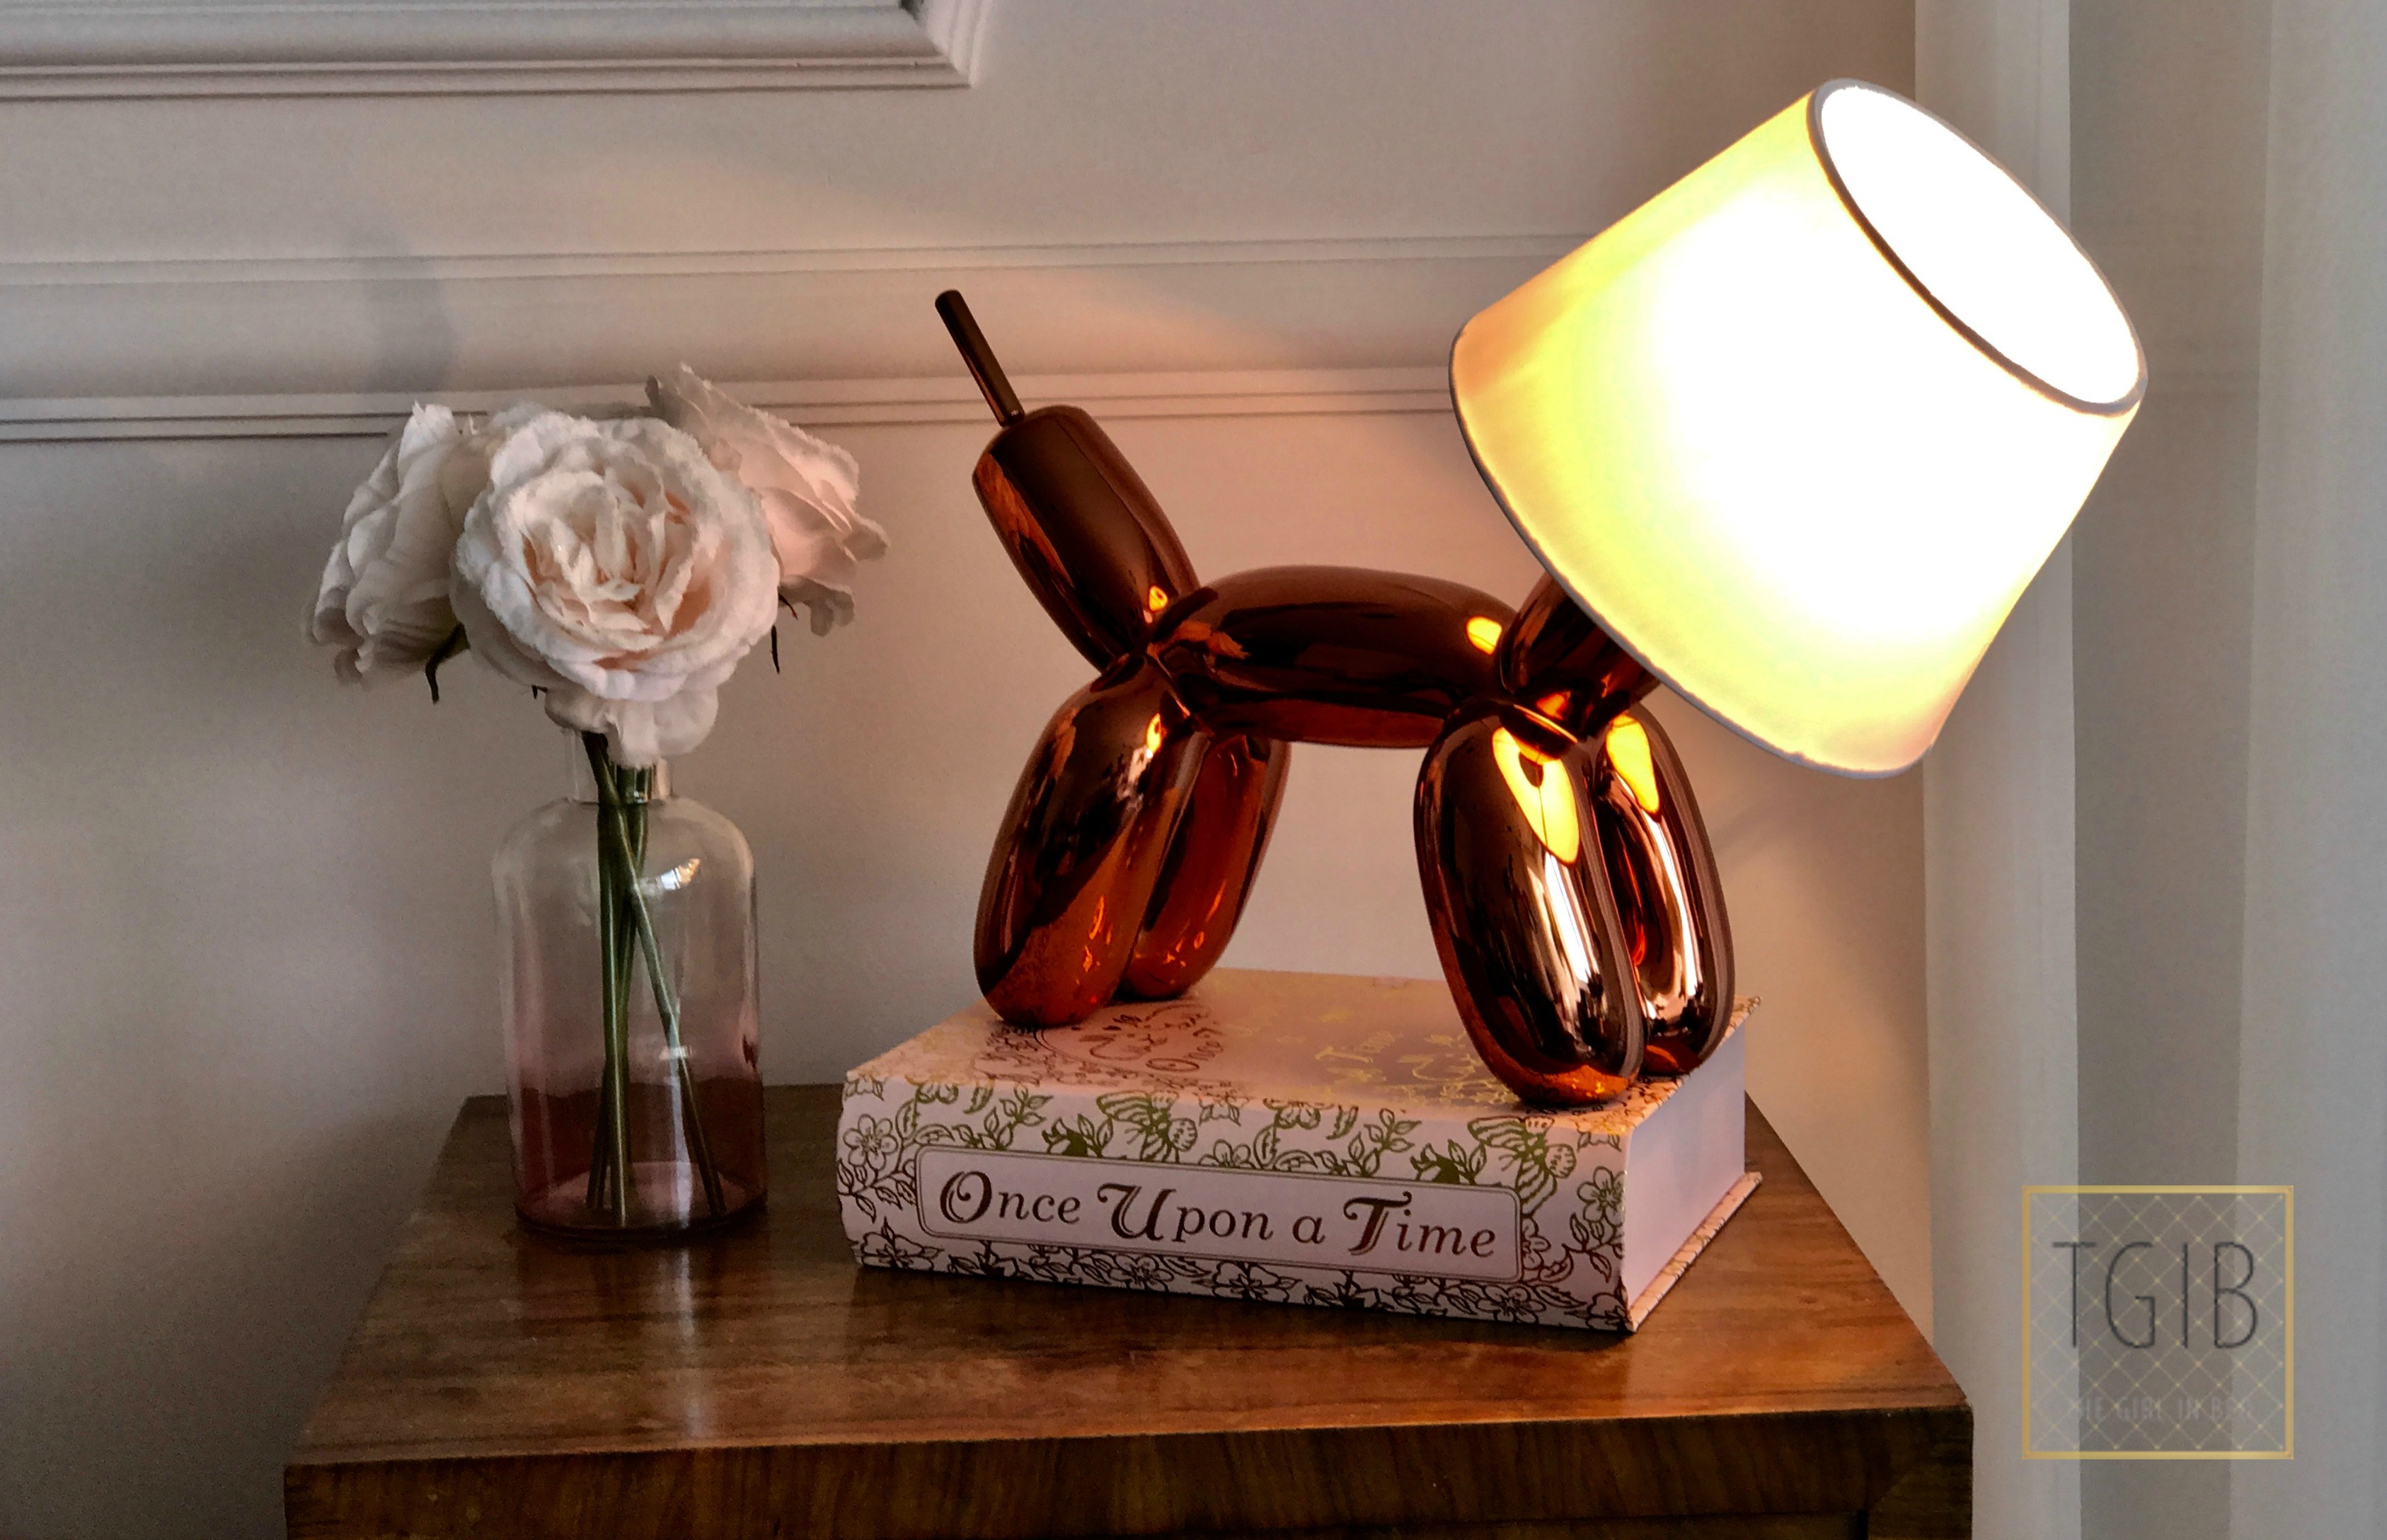 Sompex Doggy lamp